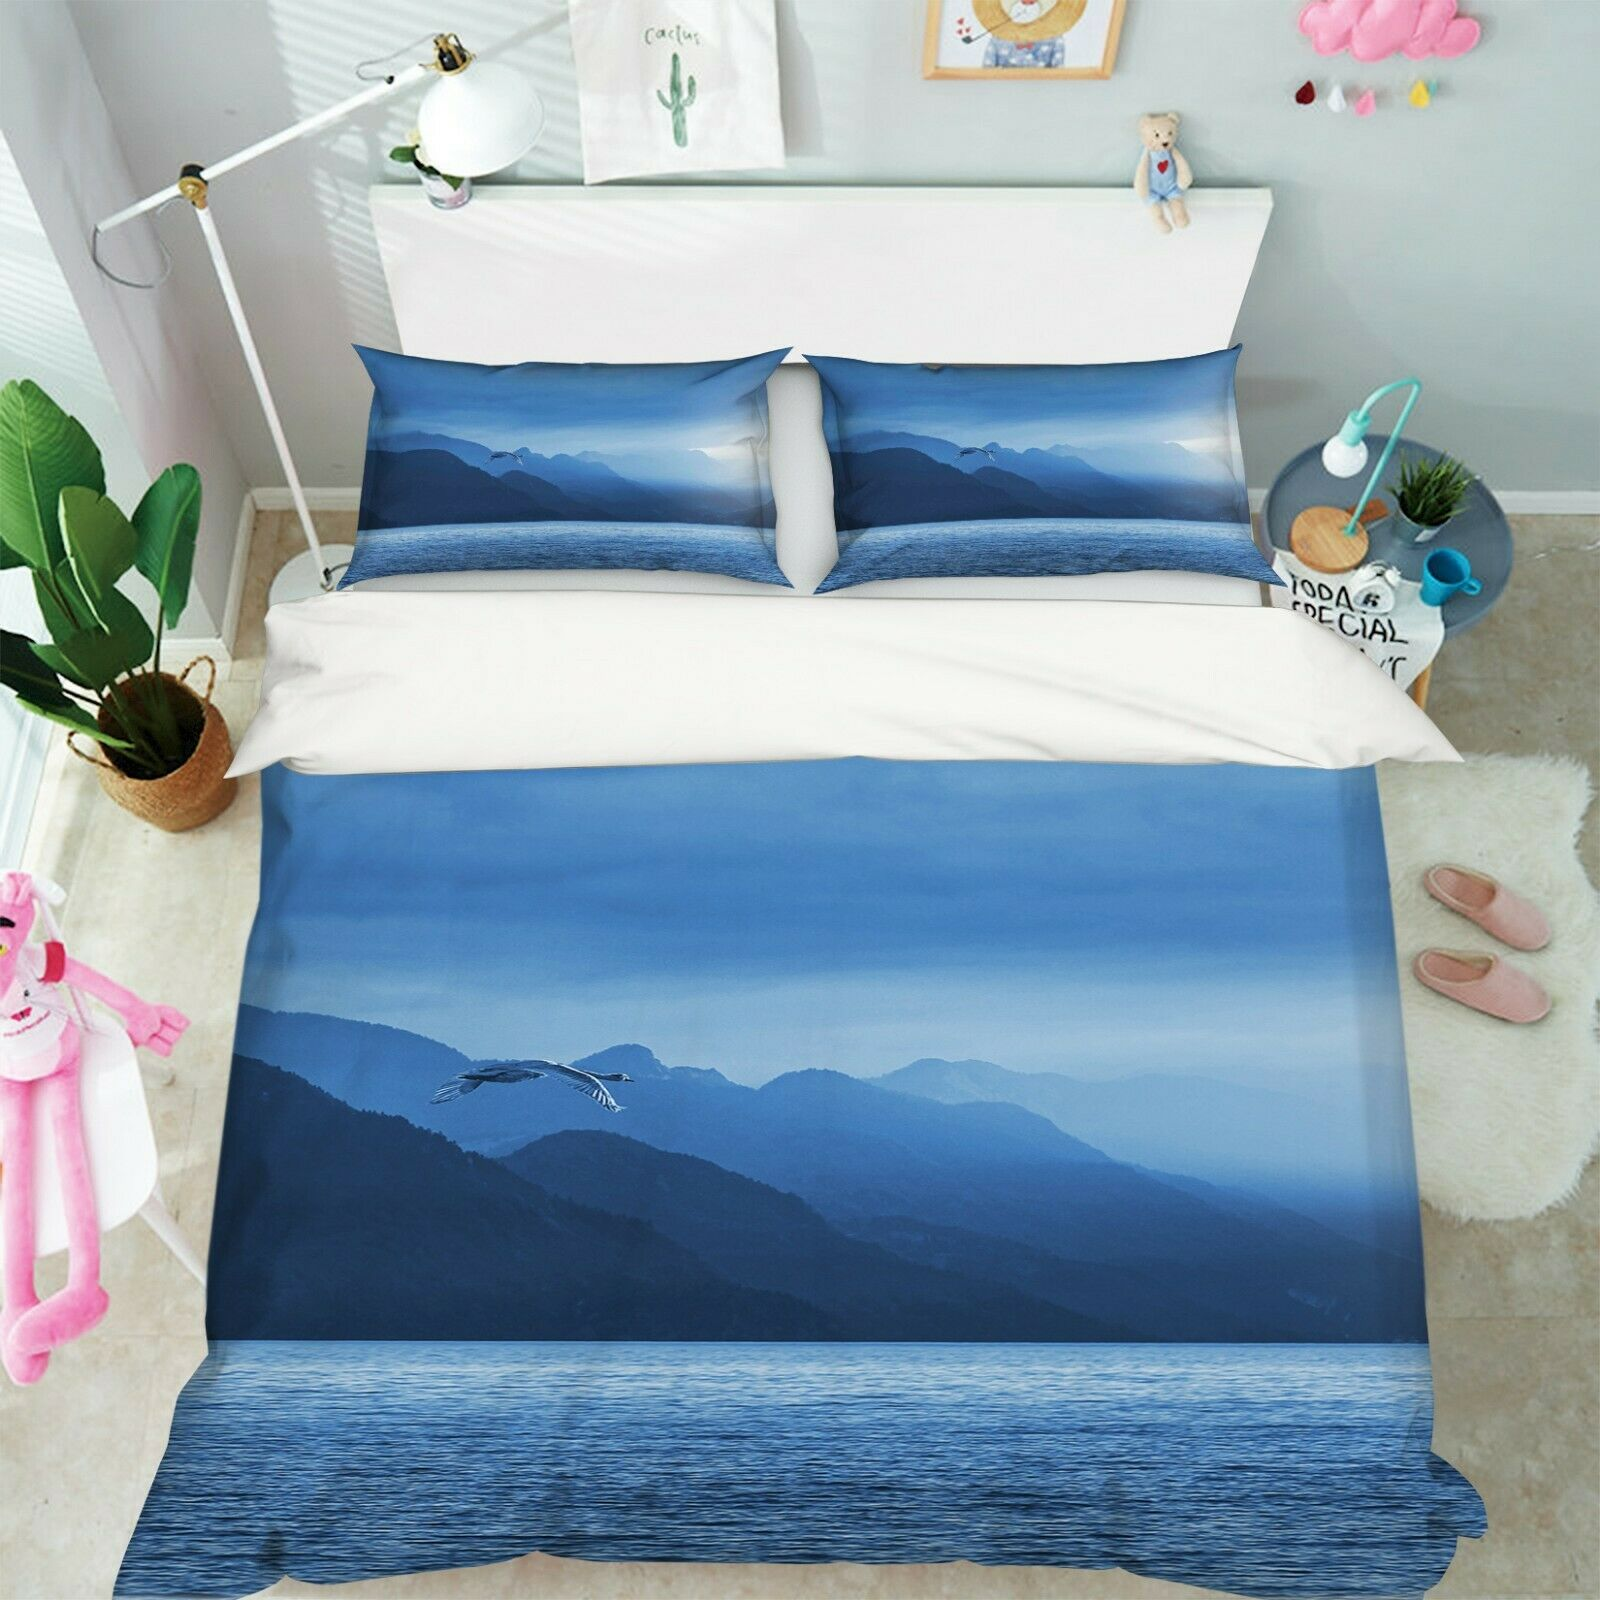 3D Lake I59 Animal Bed Pillowcases Quilt Duvet Cover Queen King Angelia